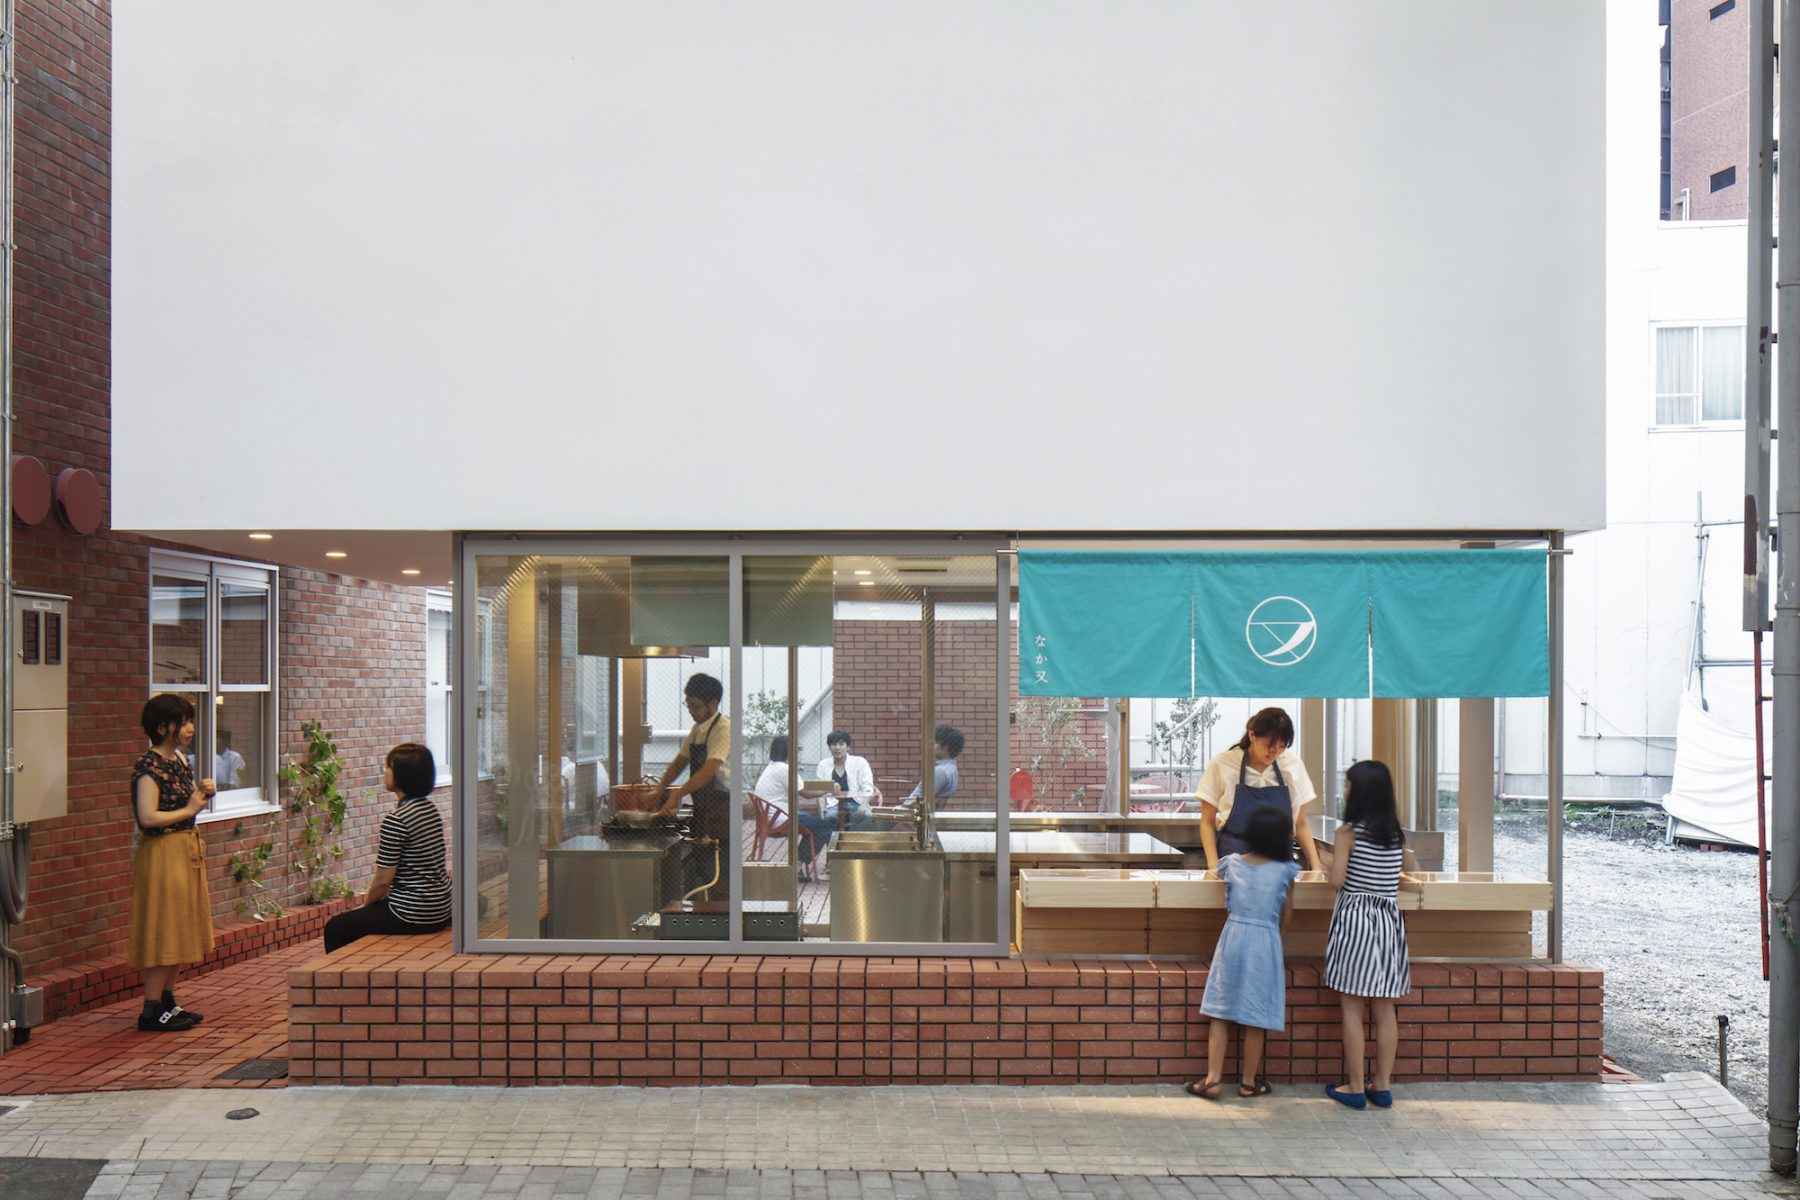 Nakamata (Maebashi Design Project)